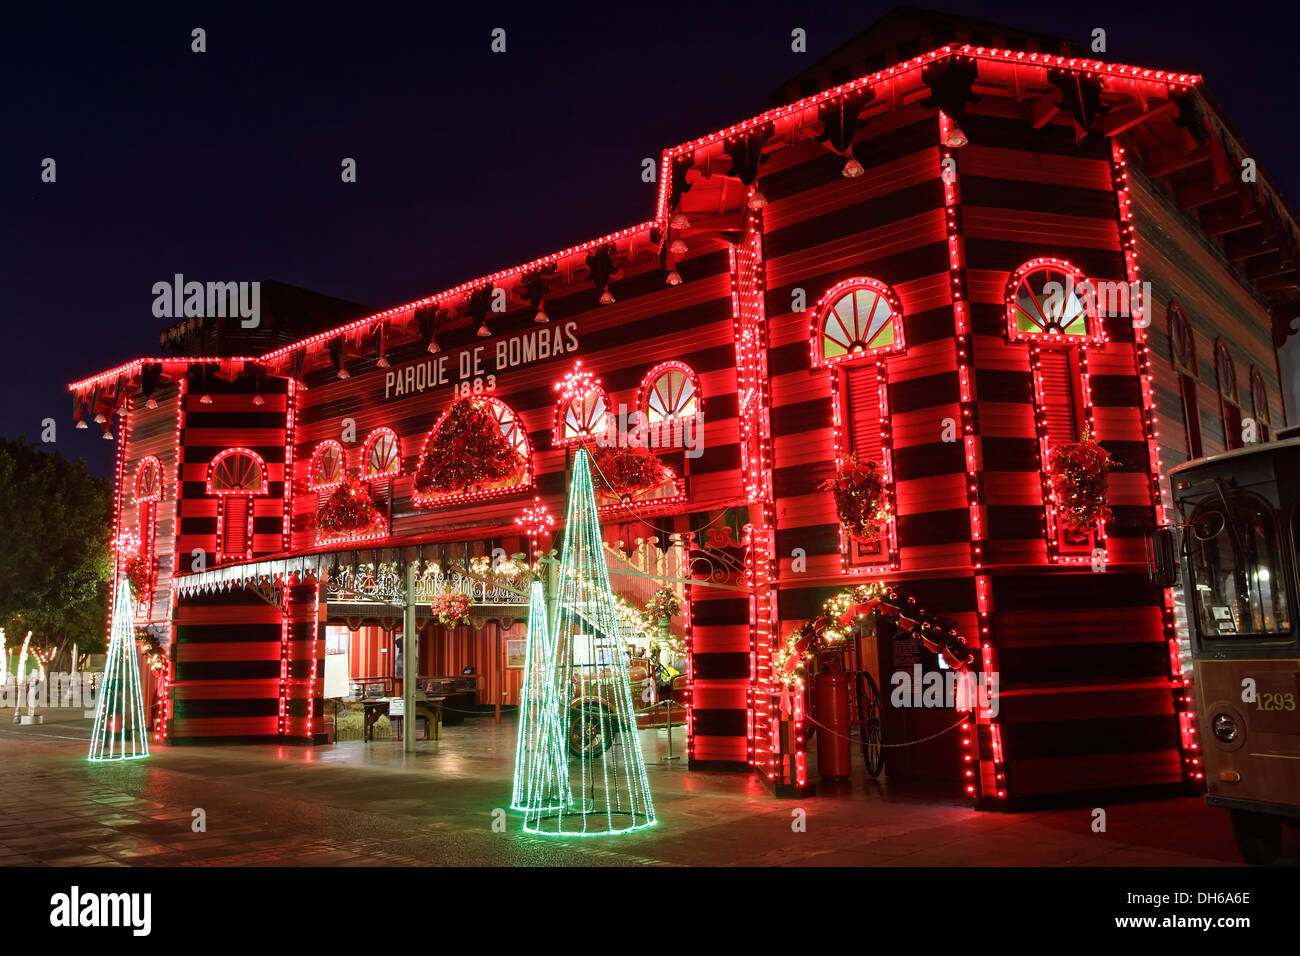 Firehouse (Parque de Bombas, 1883) and Christmas lights, Ponce ...